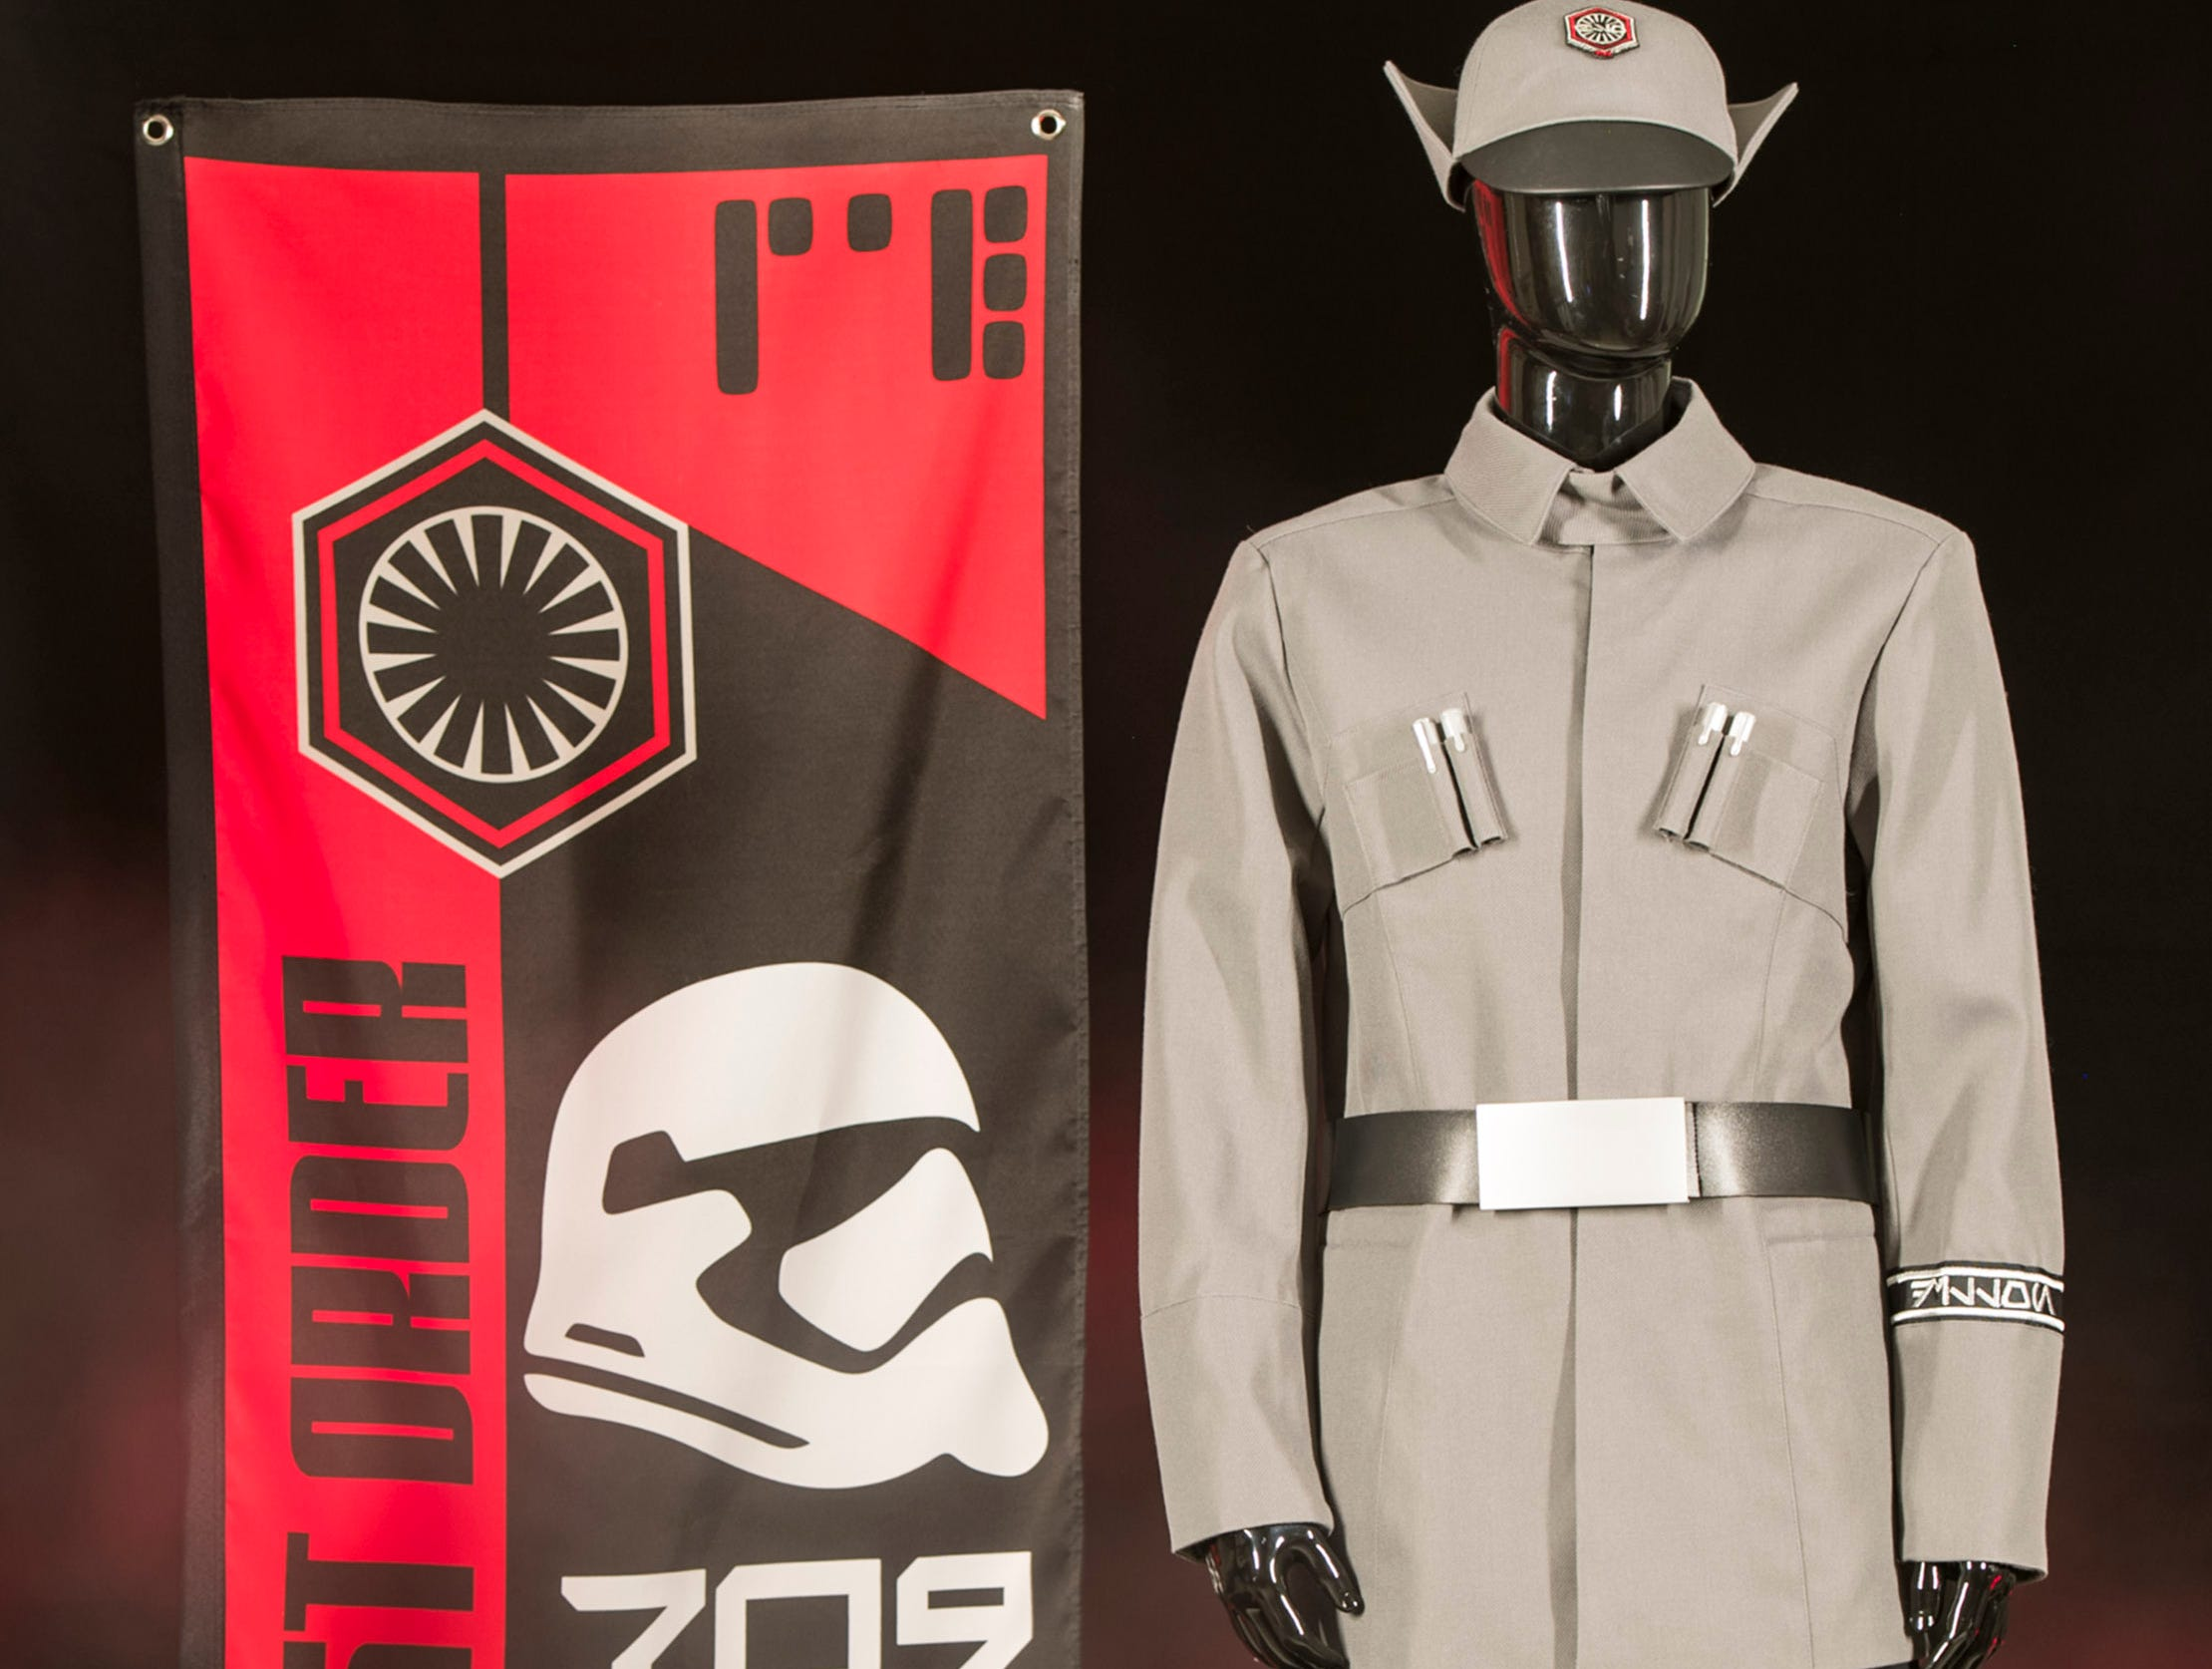 At Black Spire Outpost in Star Wars: Galaxy's Edge, guests wanting to showcase their allegiance to the First Order will be able to choose among the gear and supplies that the 709th Legion brought with them to First Order Cargo.